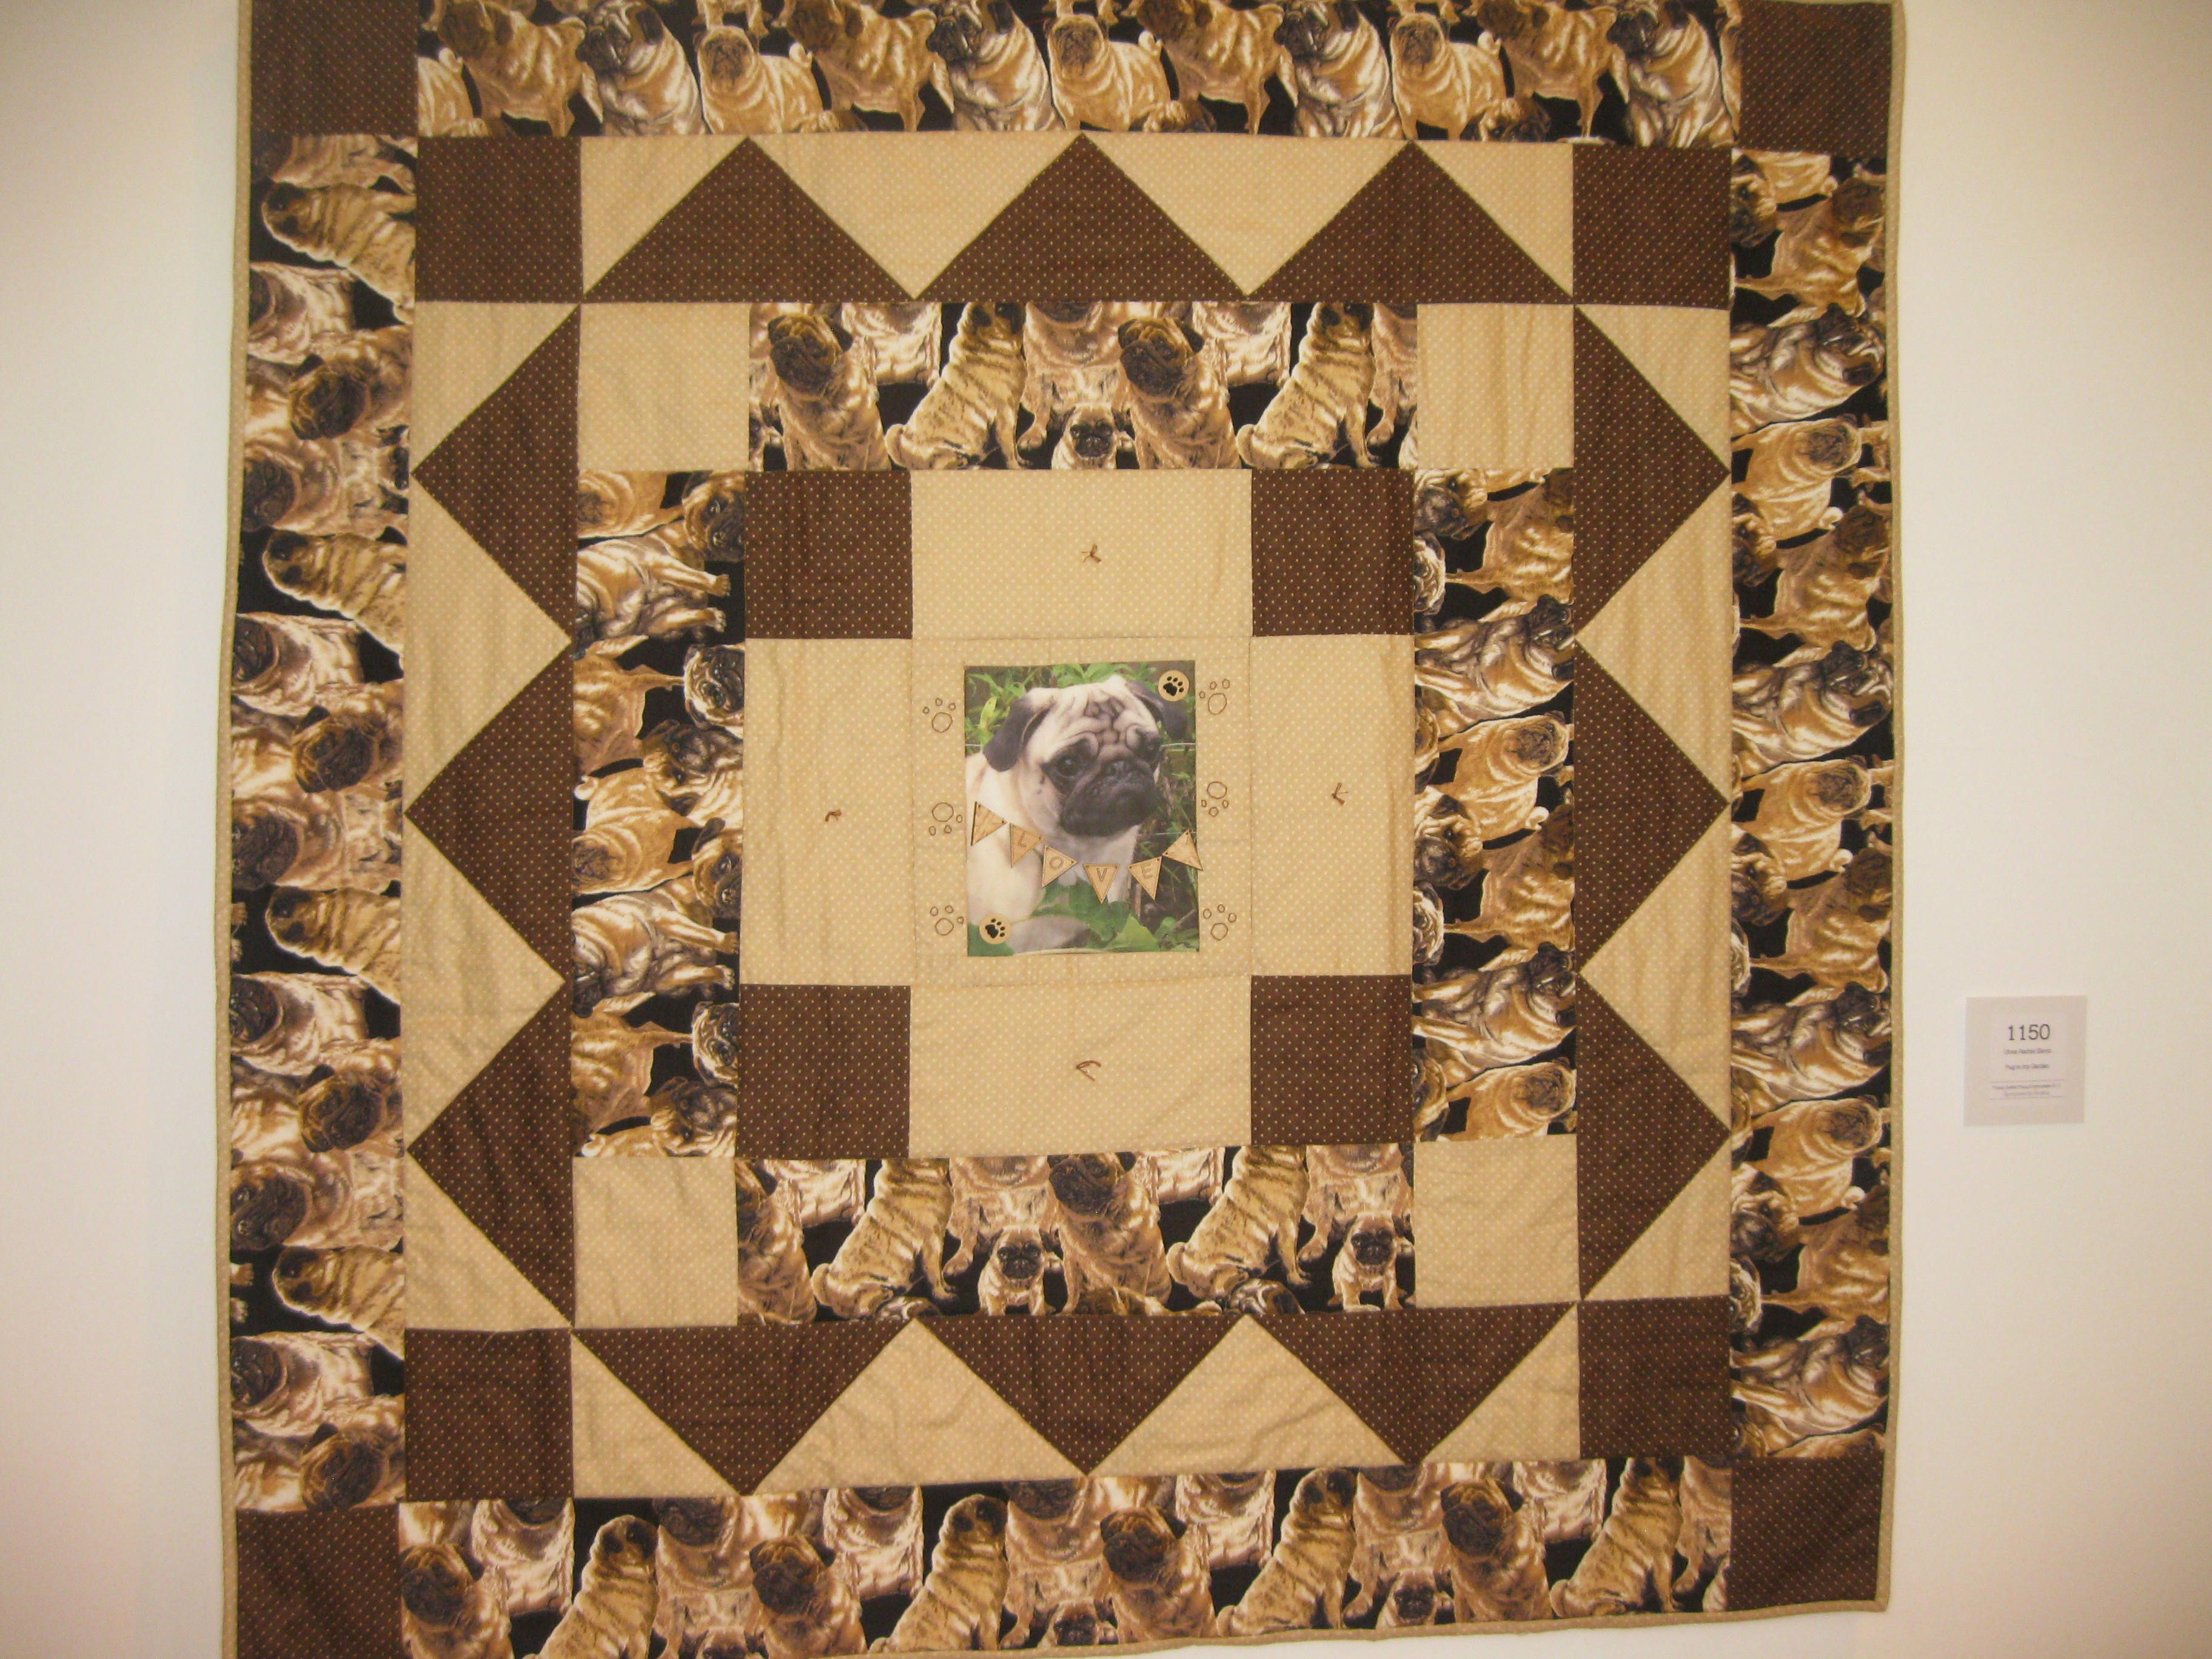 I bet you can guess the favourite animal of this young quilter maker! Pugs!!